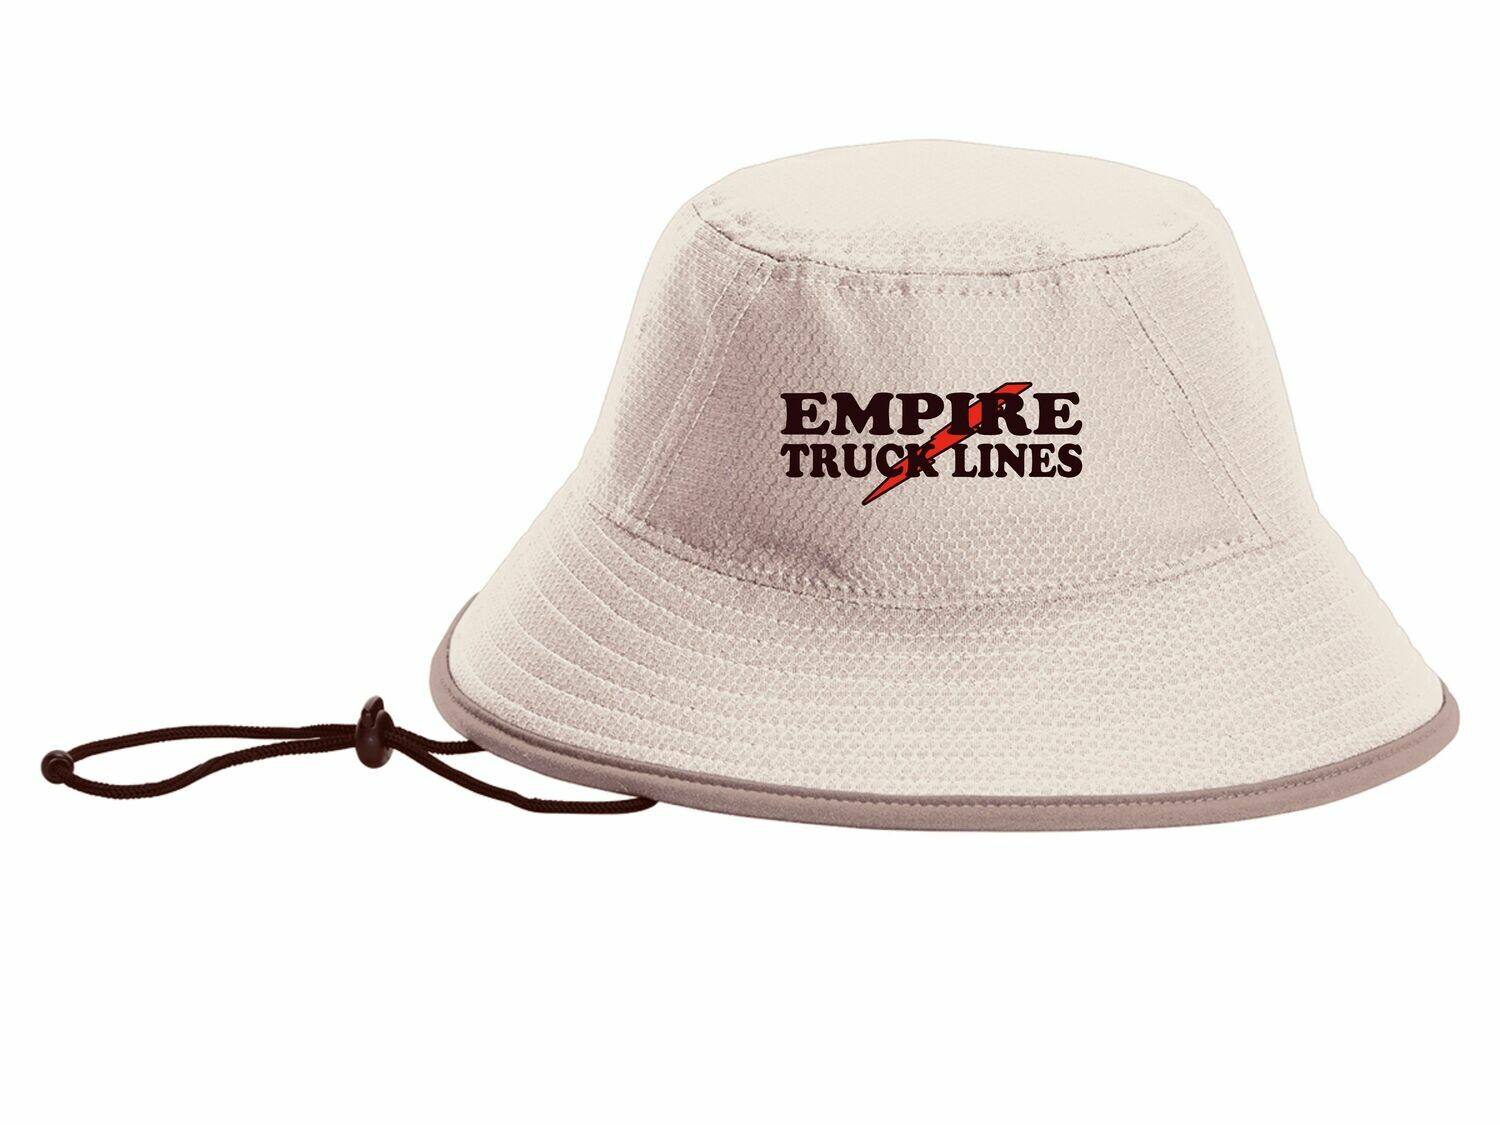 Empire Truck Lines New Era Bucket Hat